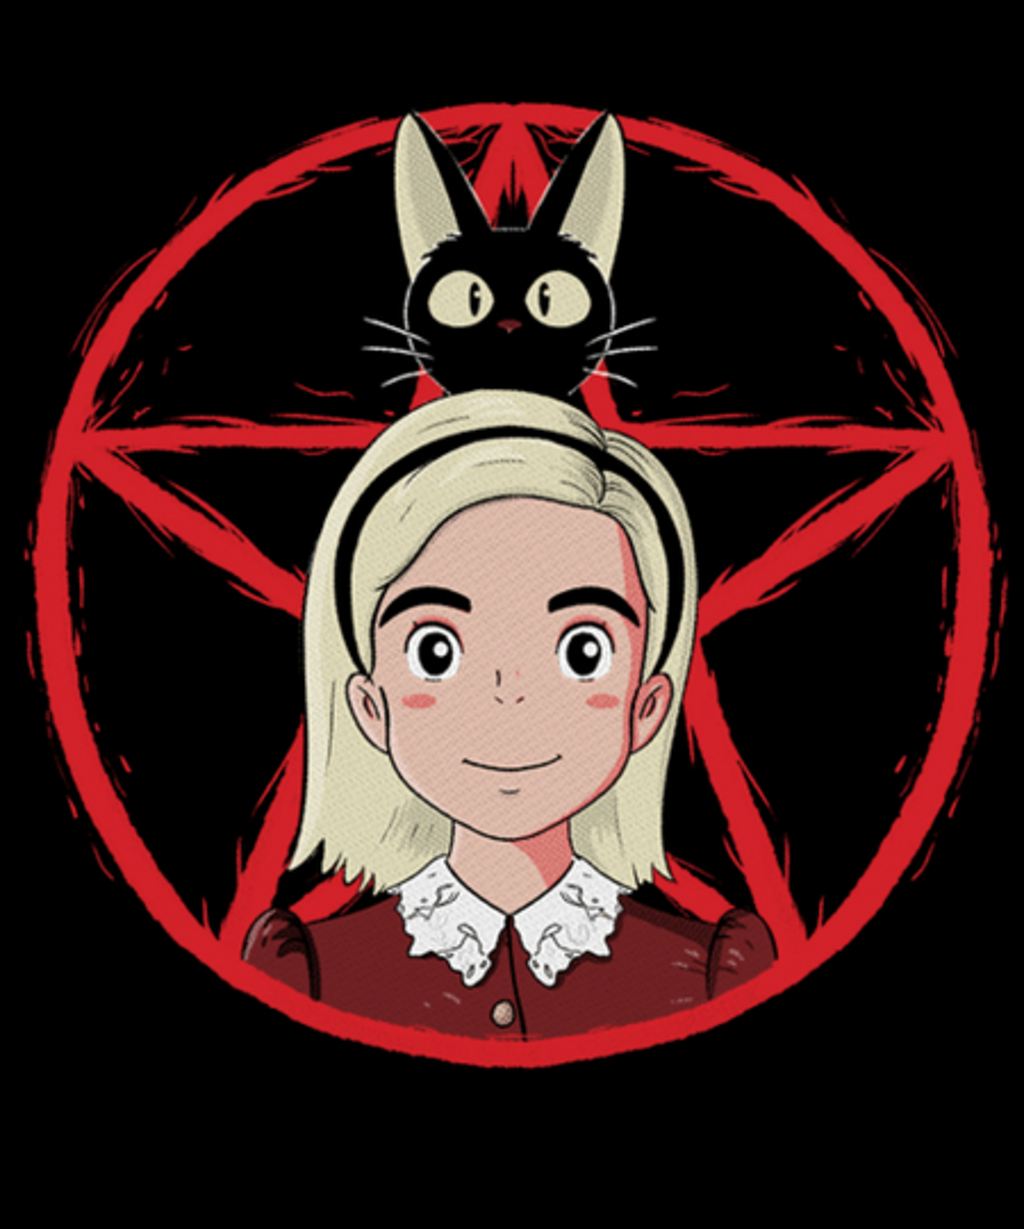 Qwertee: Sabrina Delivery Service